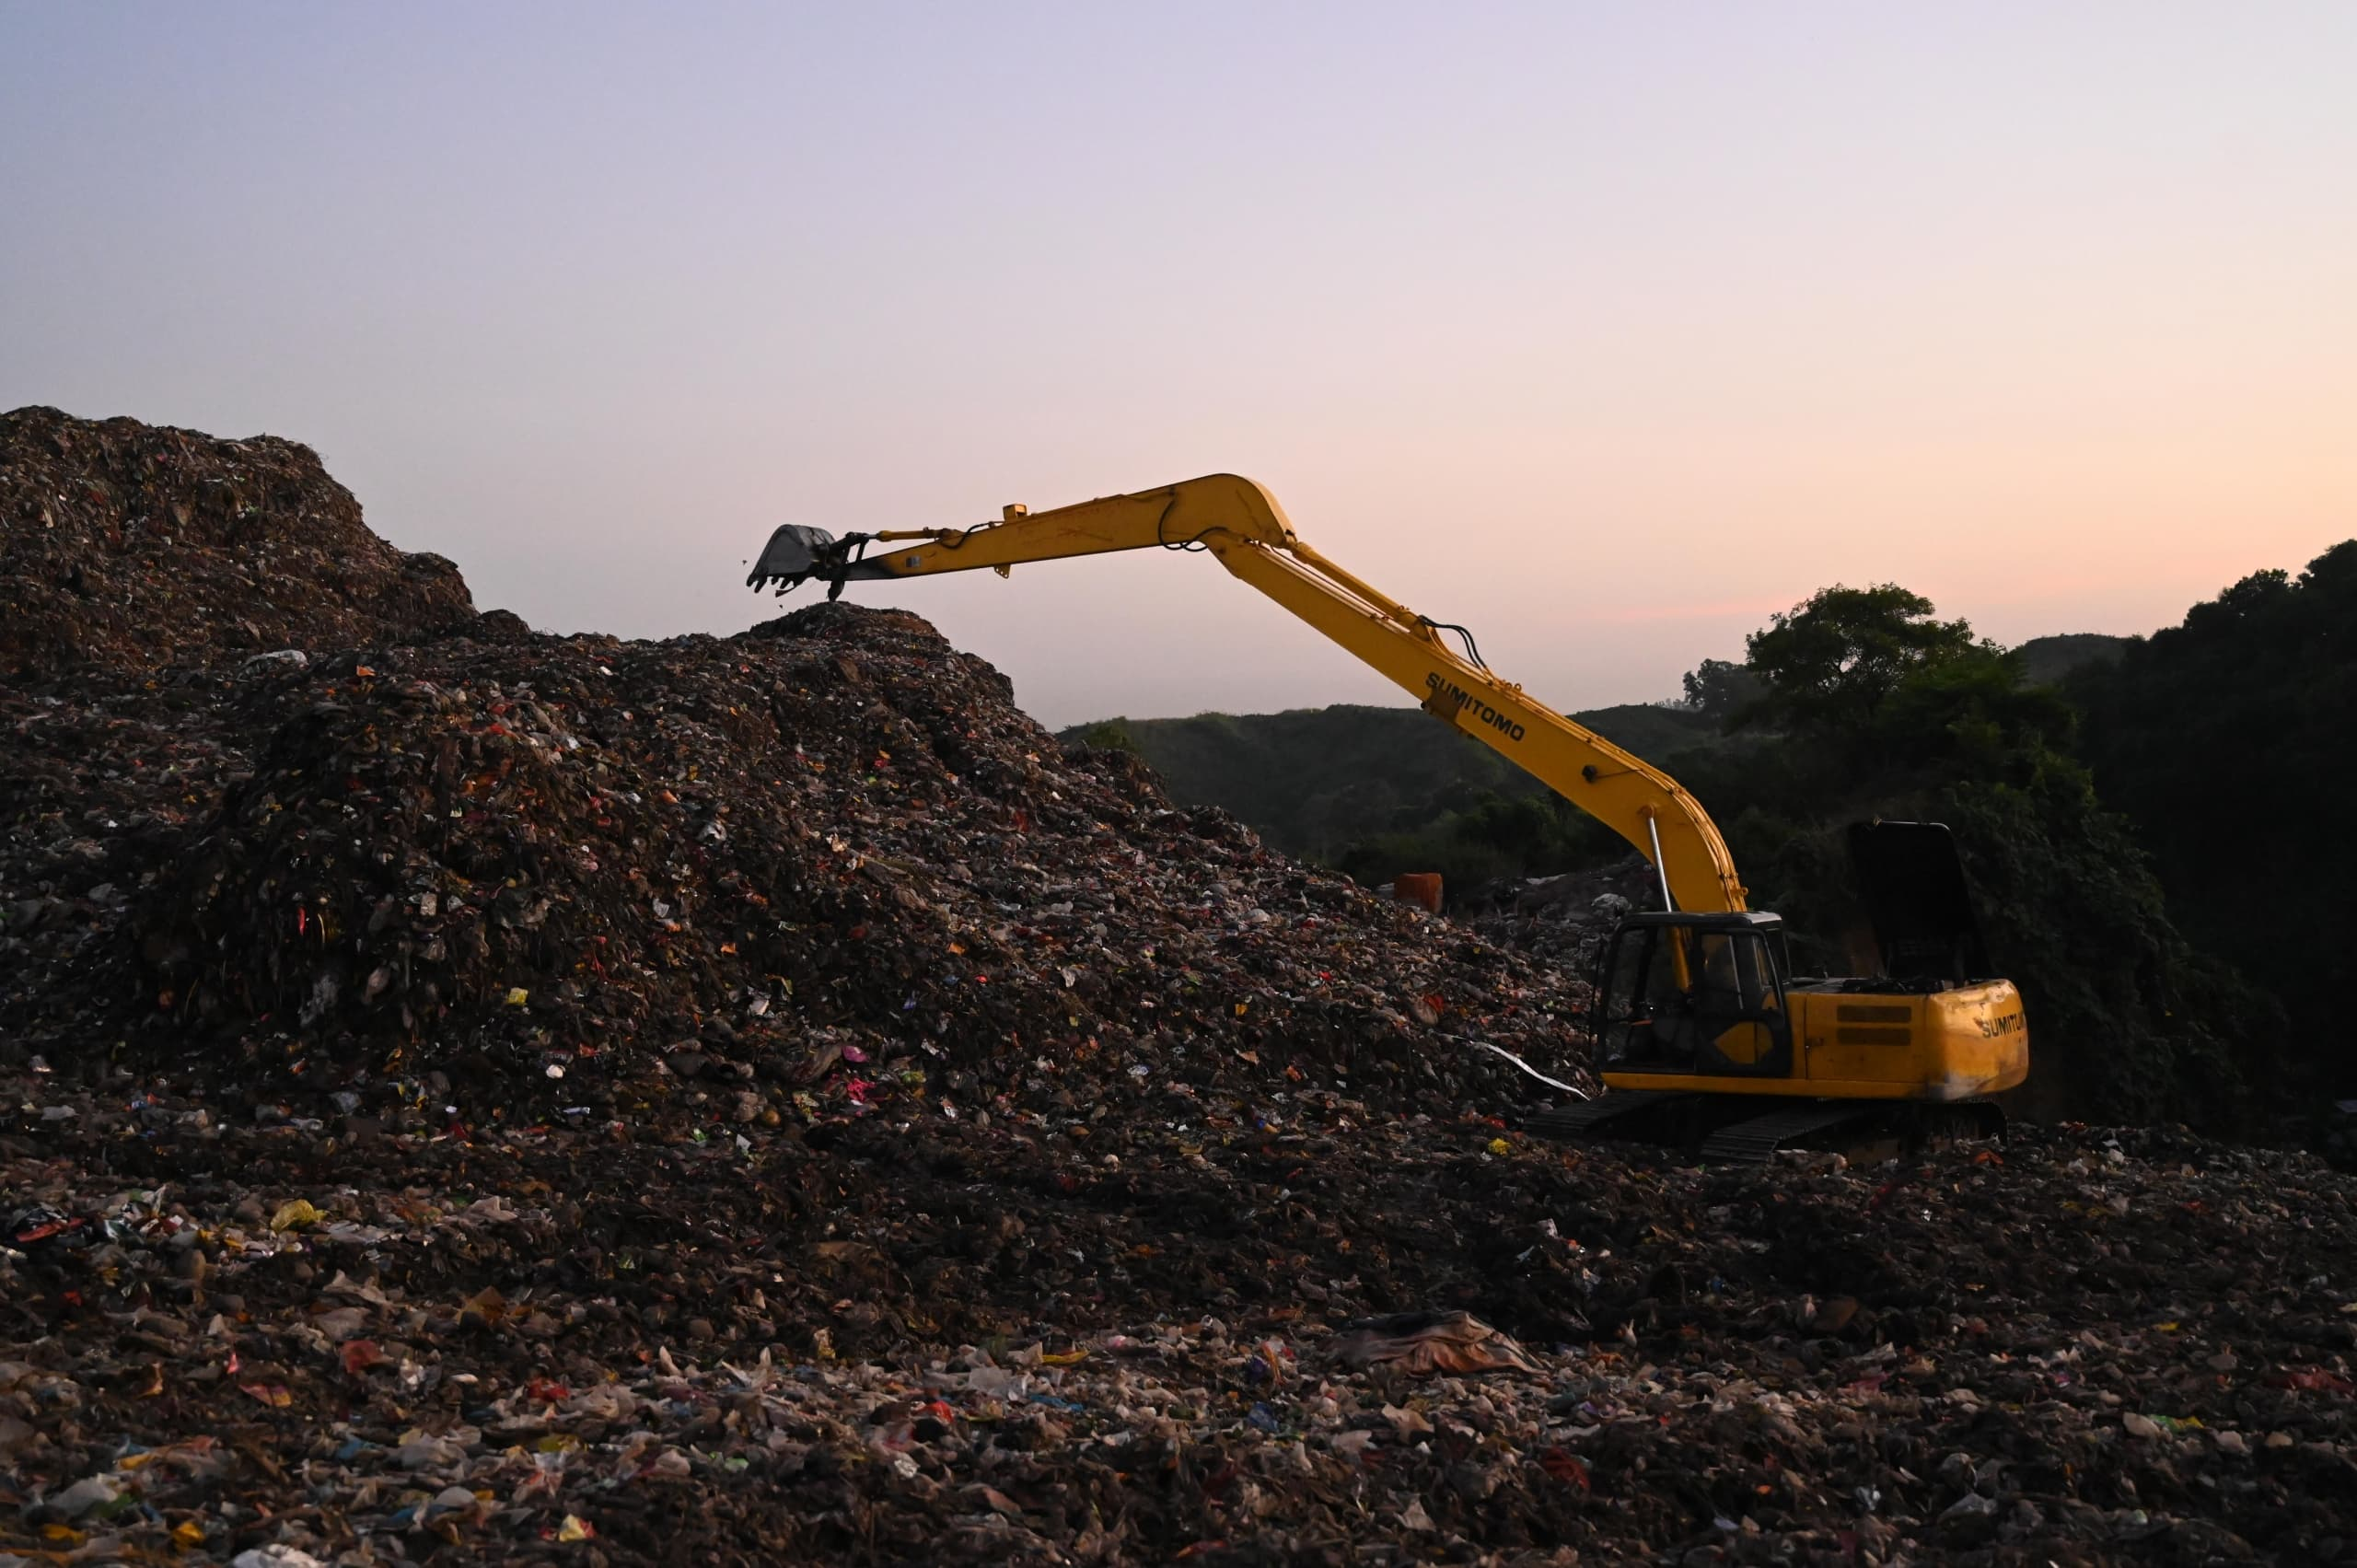 photo-of-backhoe-on-landfill-3230538.jpg ATTACHMENT DETAILS photo-of-backhoe-on-landfill